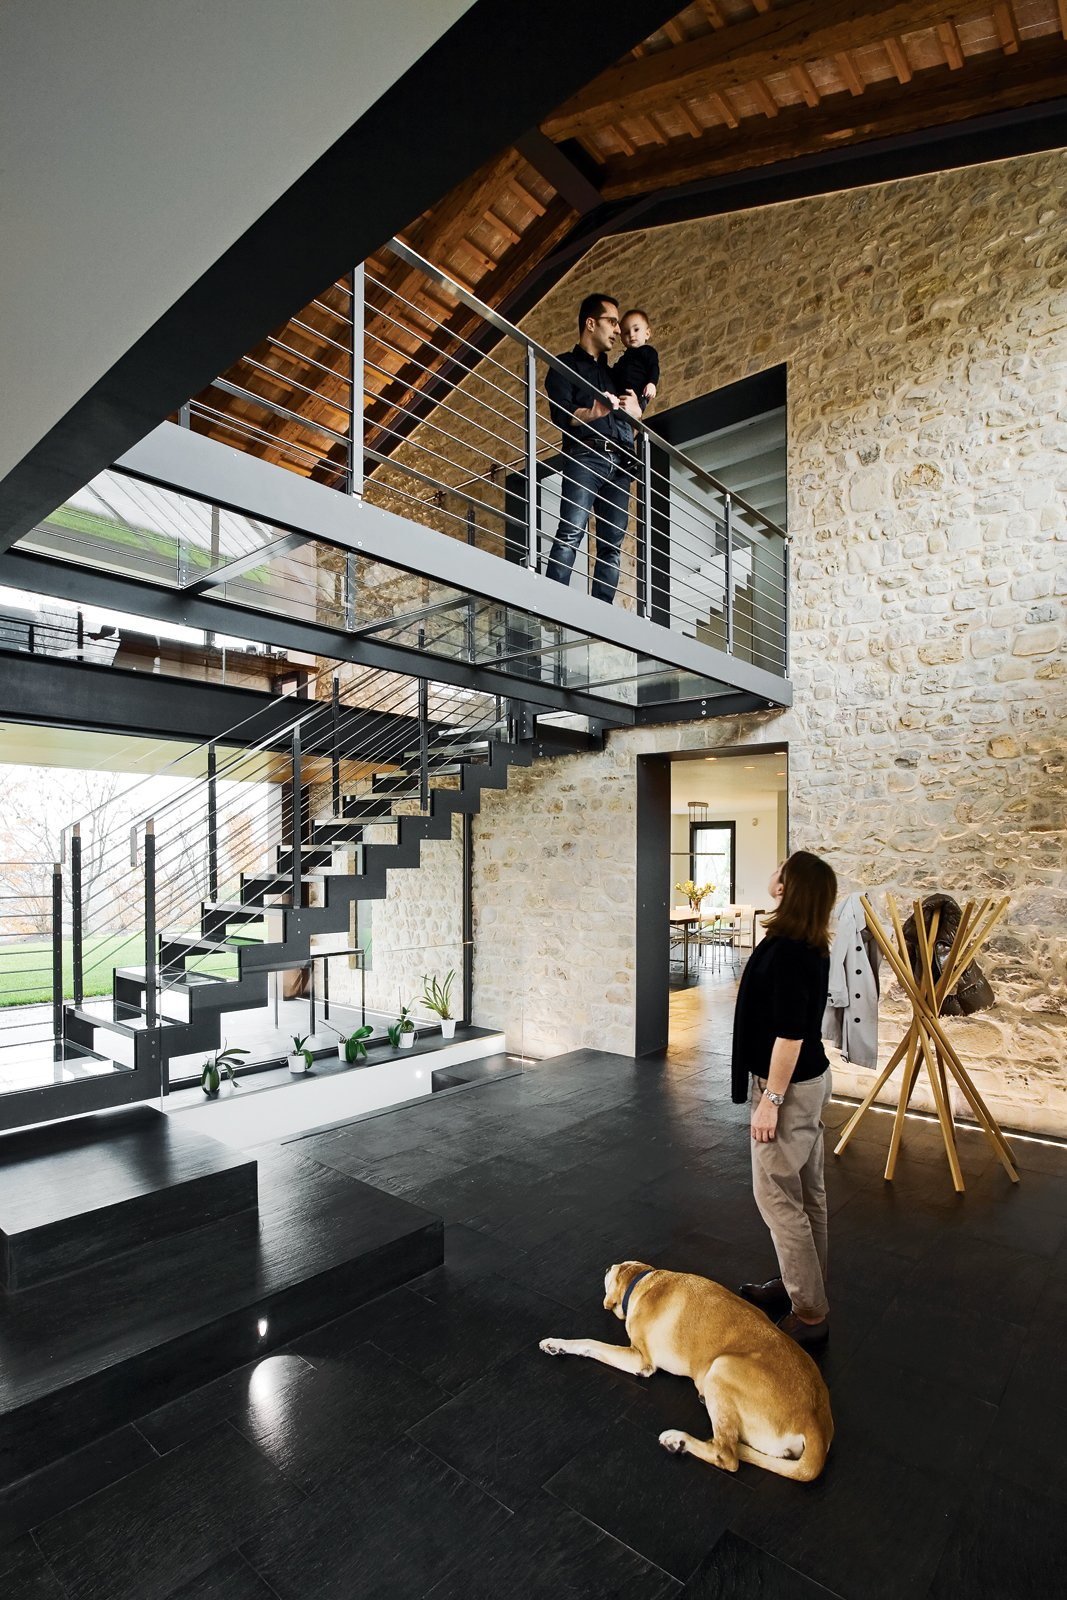 Articles about renovated farmhouse northern italy on Dwell.com